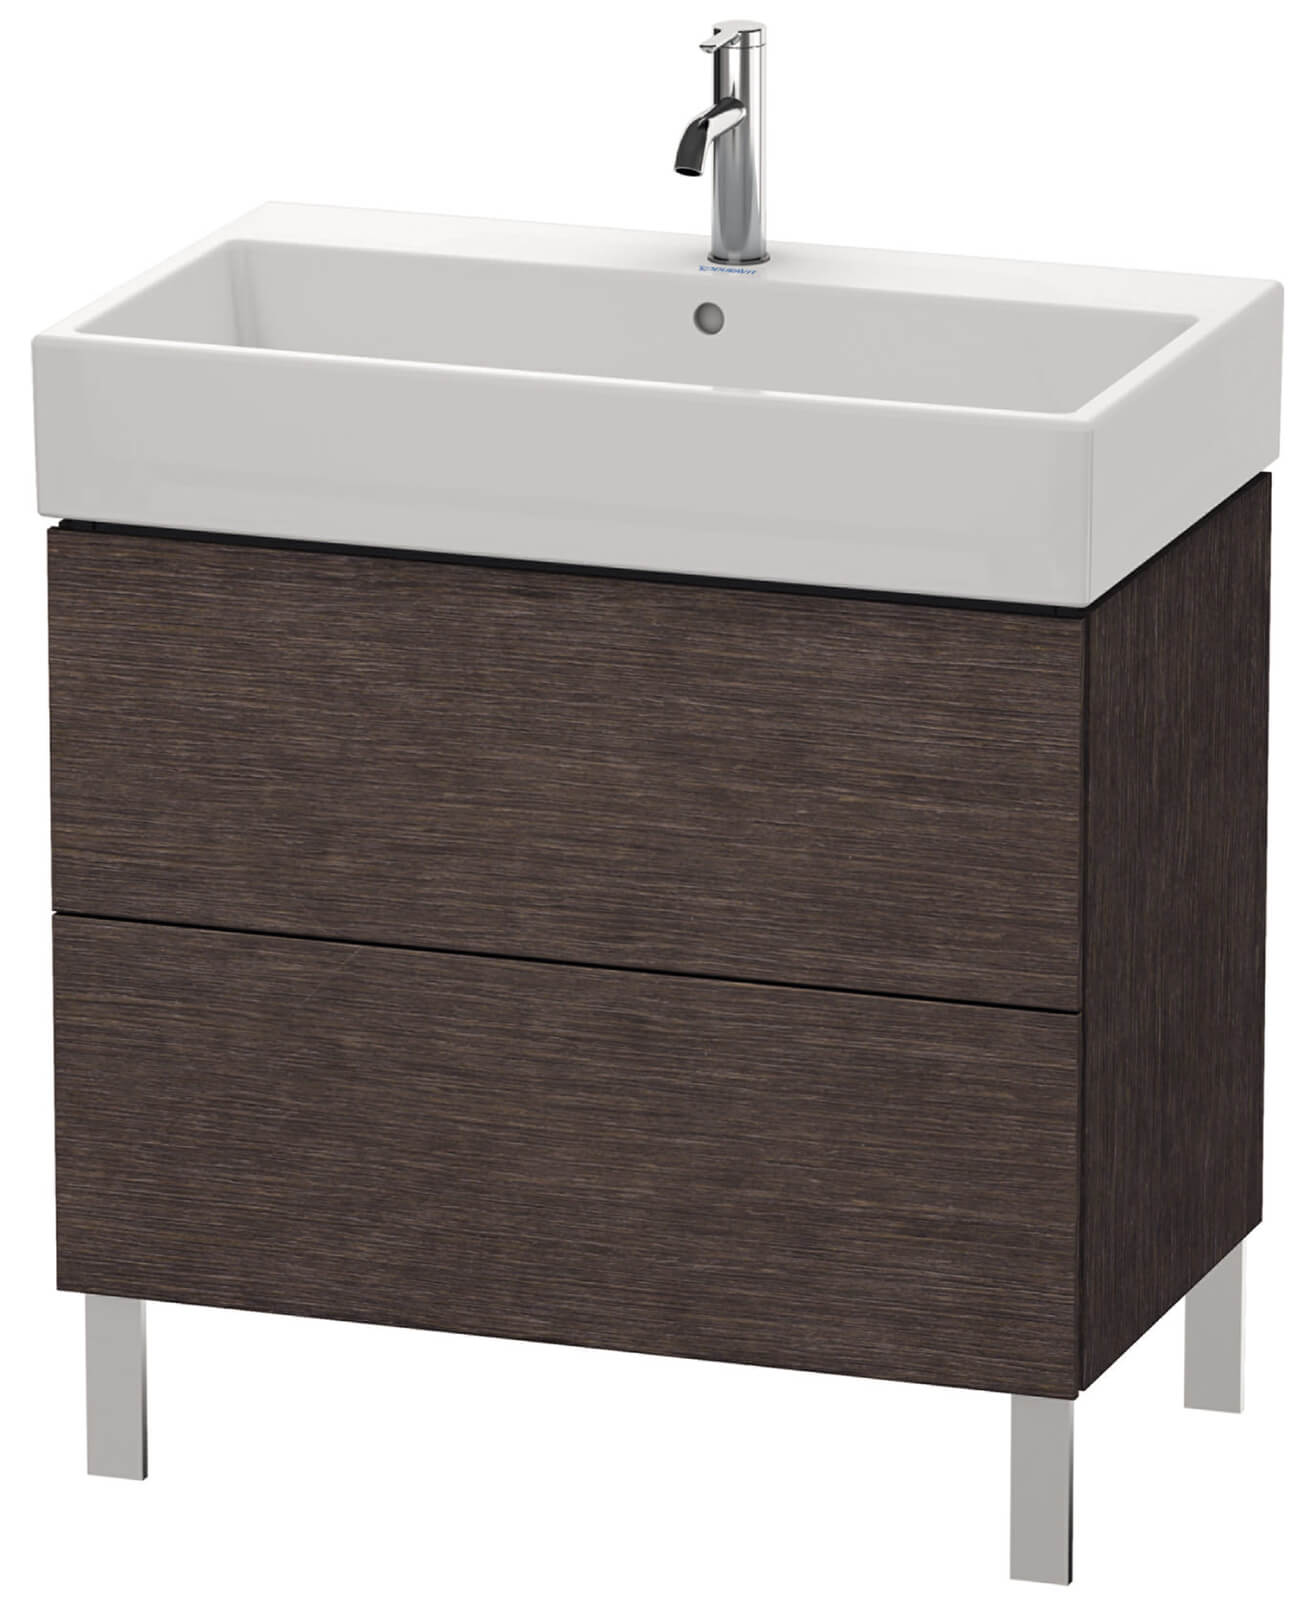 duravit l cube 784mm floor standing vanity unit with vero. Black Bedroom Furniture Sets. Home Design Ideas